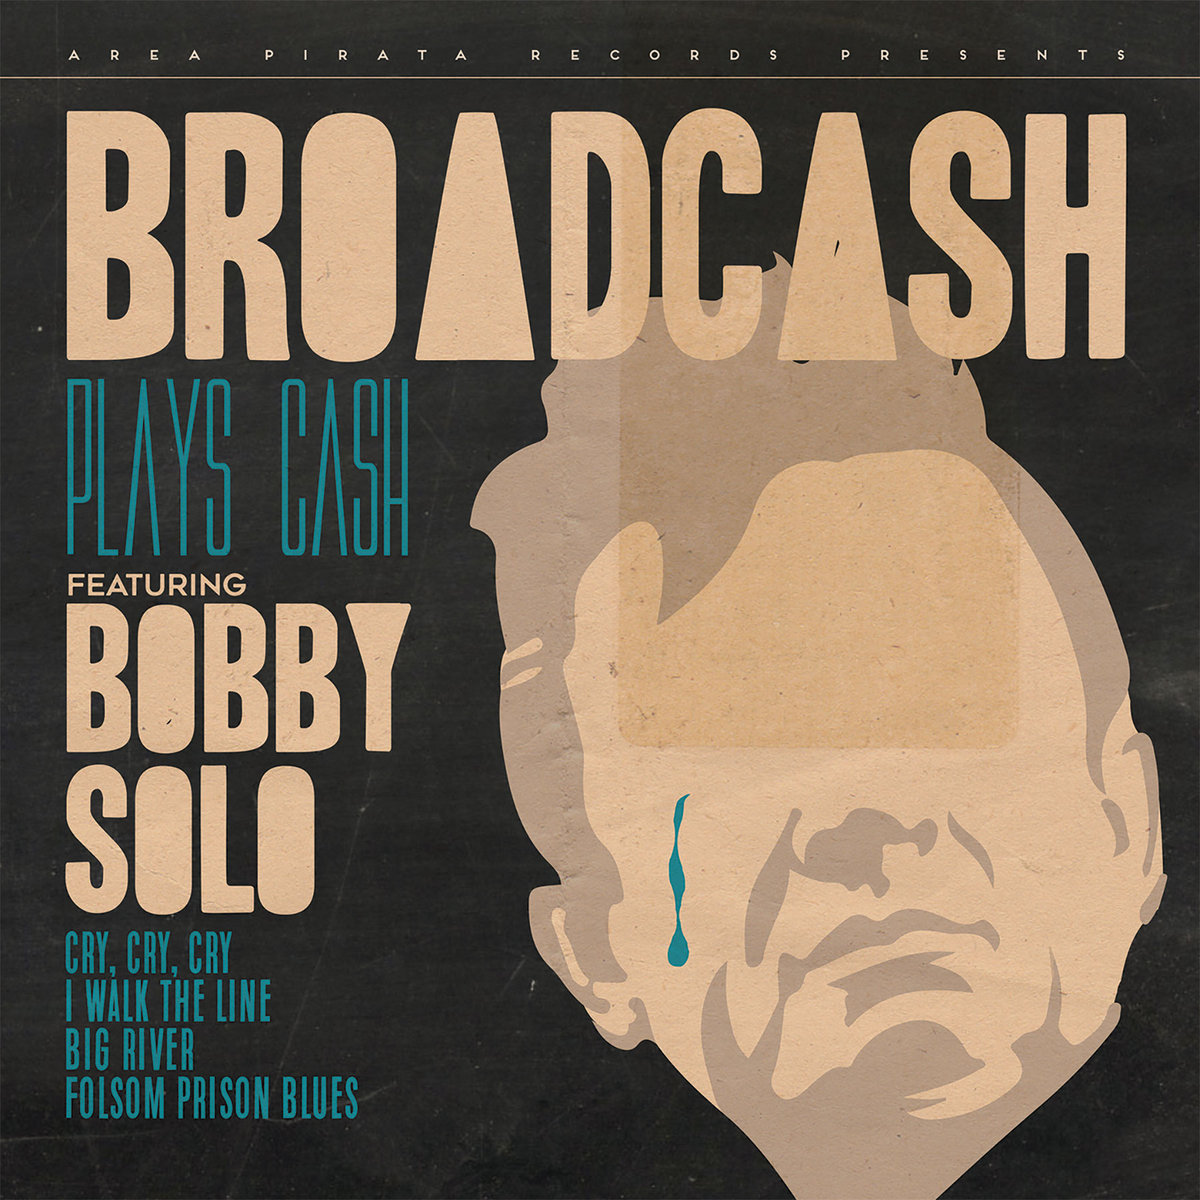 Broadcash plays Cash featuring Bobby Solo | Area Pirata Rec